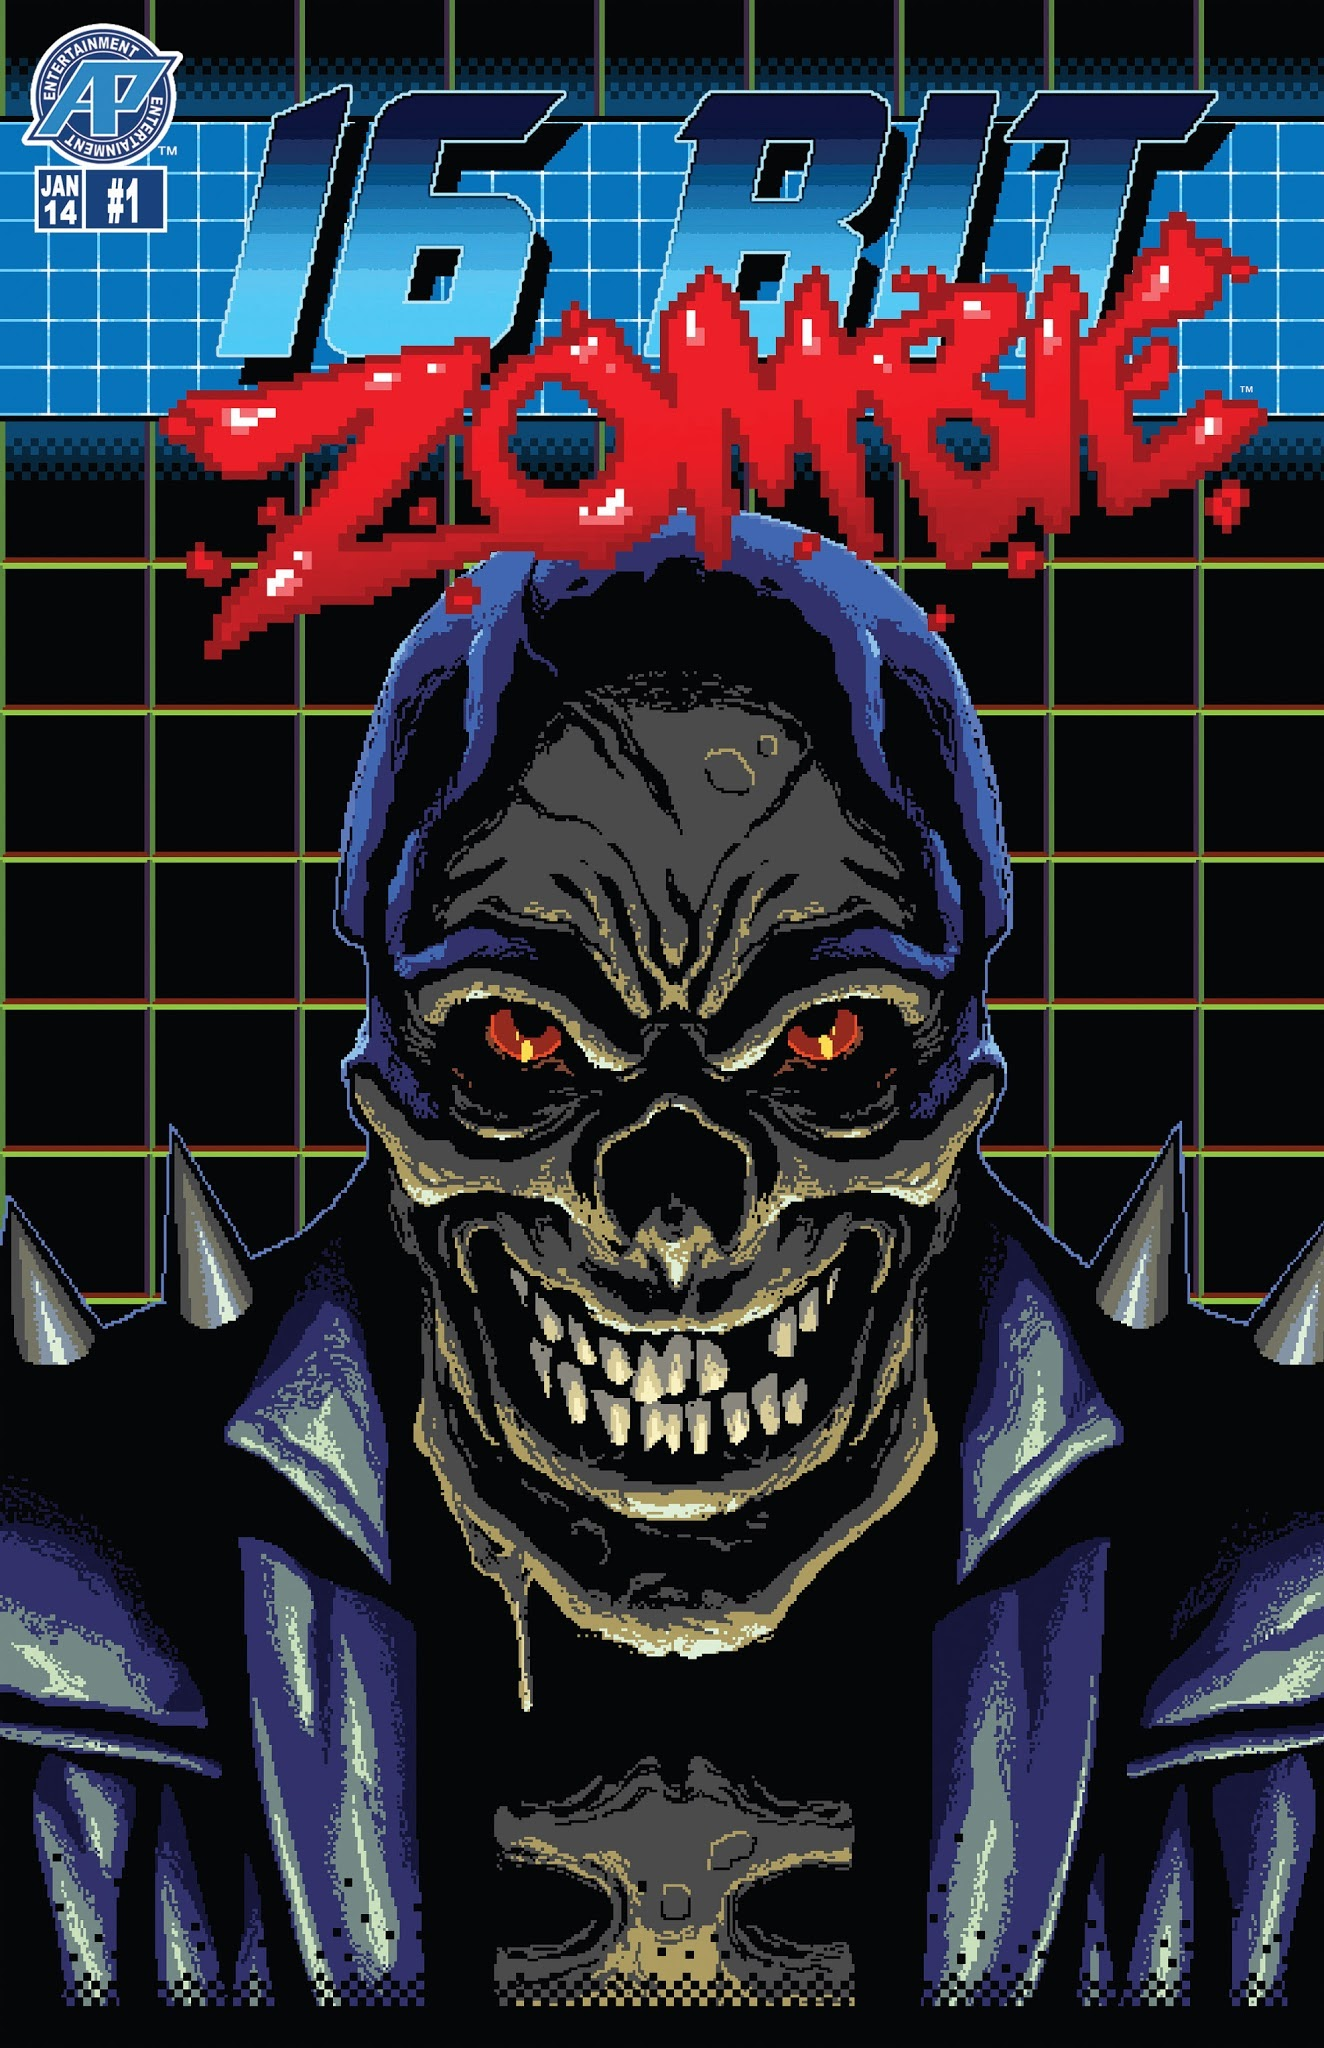 16-Bit Zombie Full Page 1